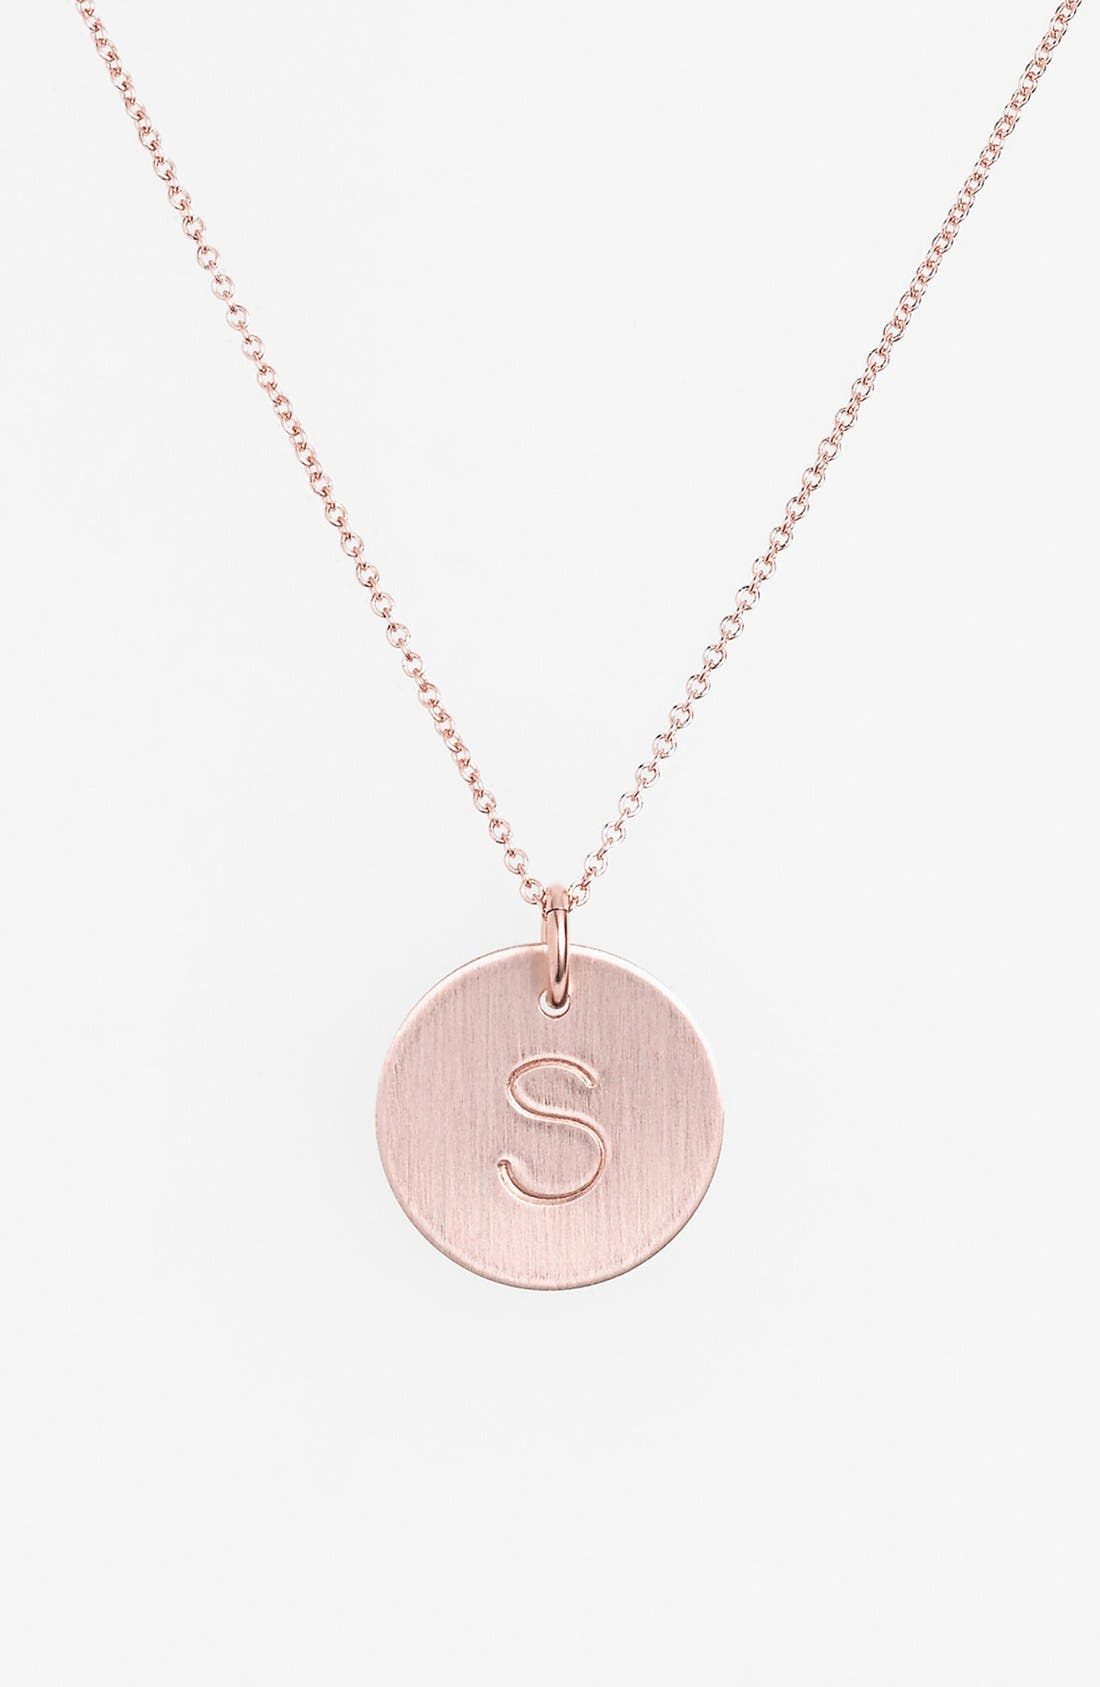 14k-Rose Gold Fill Initial Disc Necklace,                             Main thumbnail 19, color,